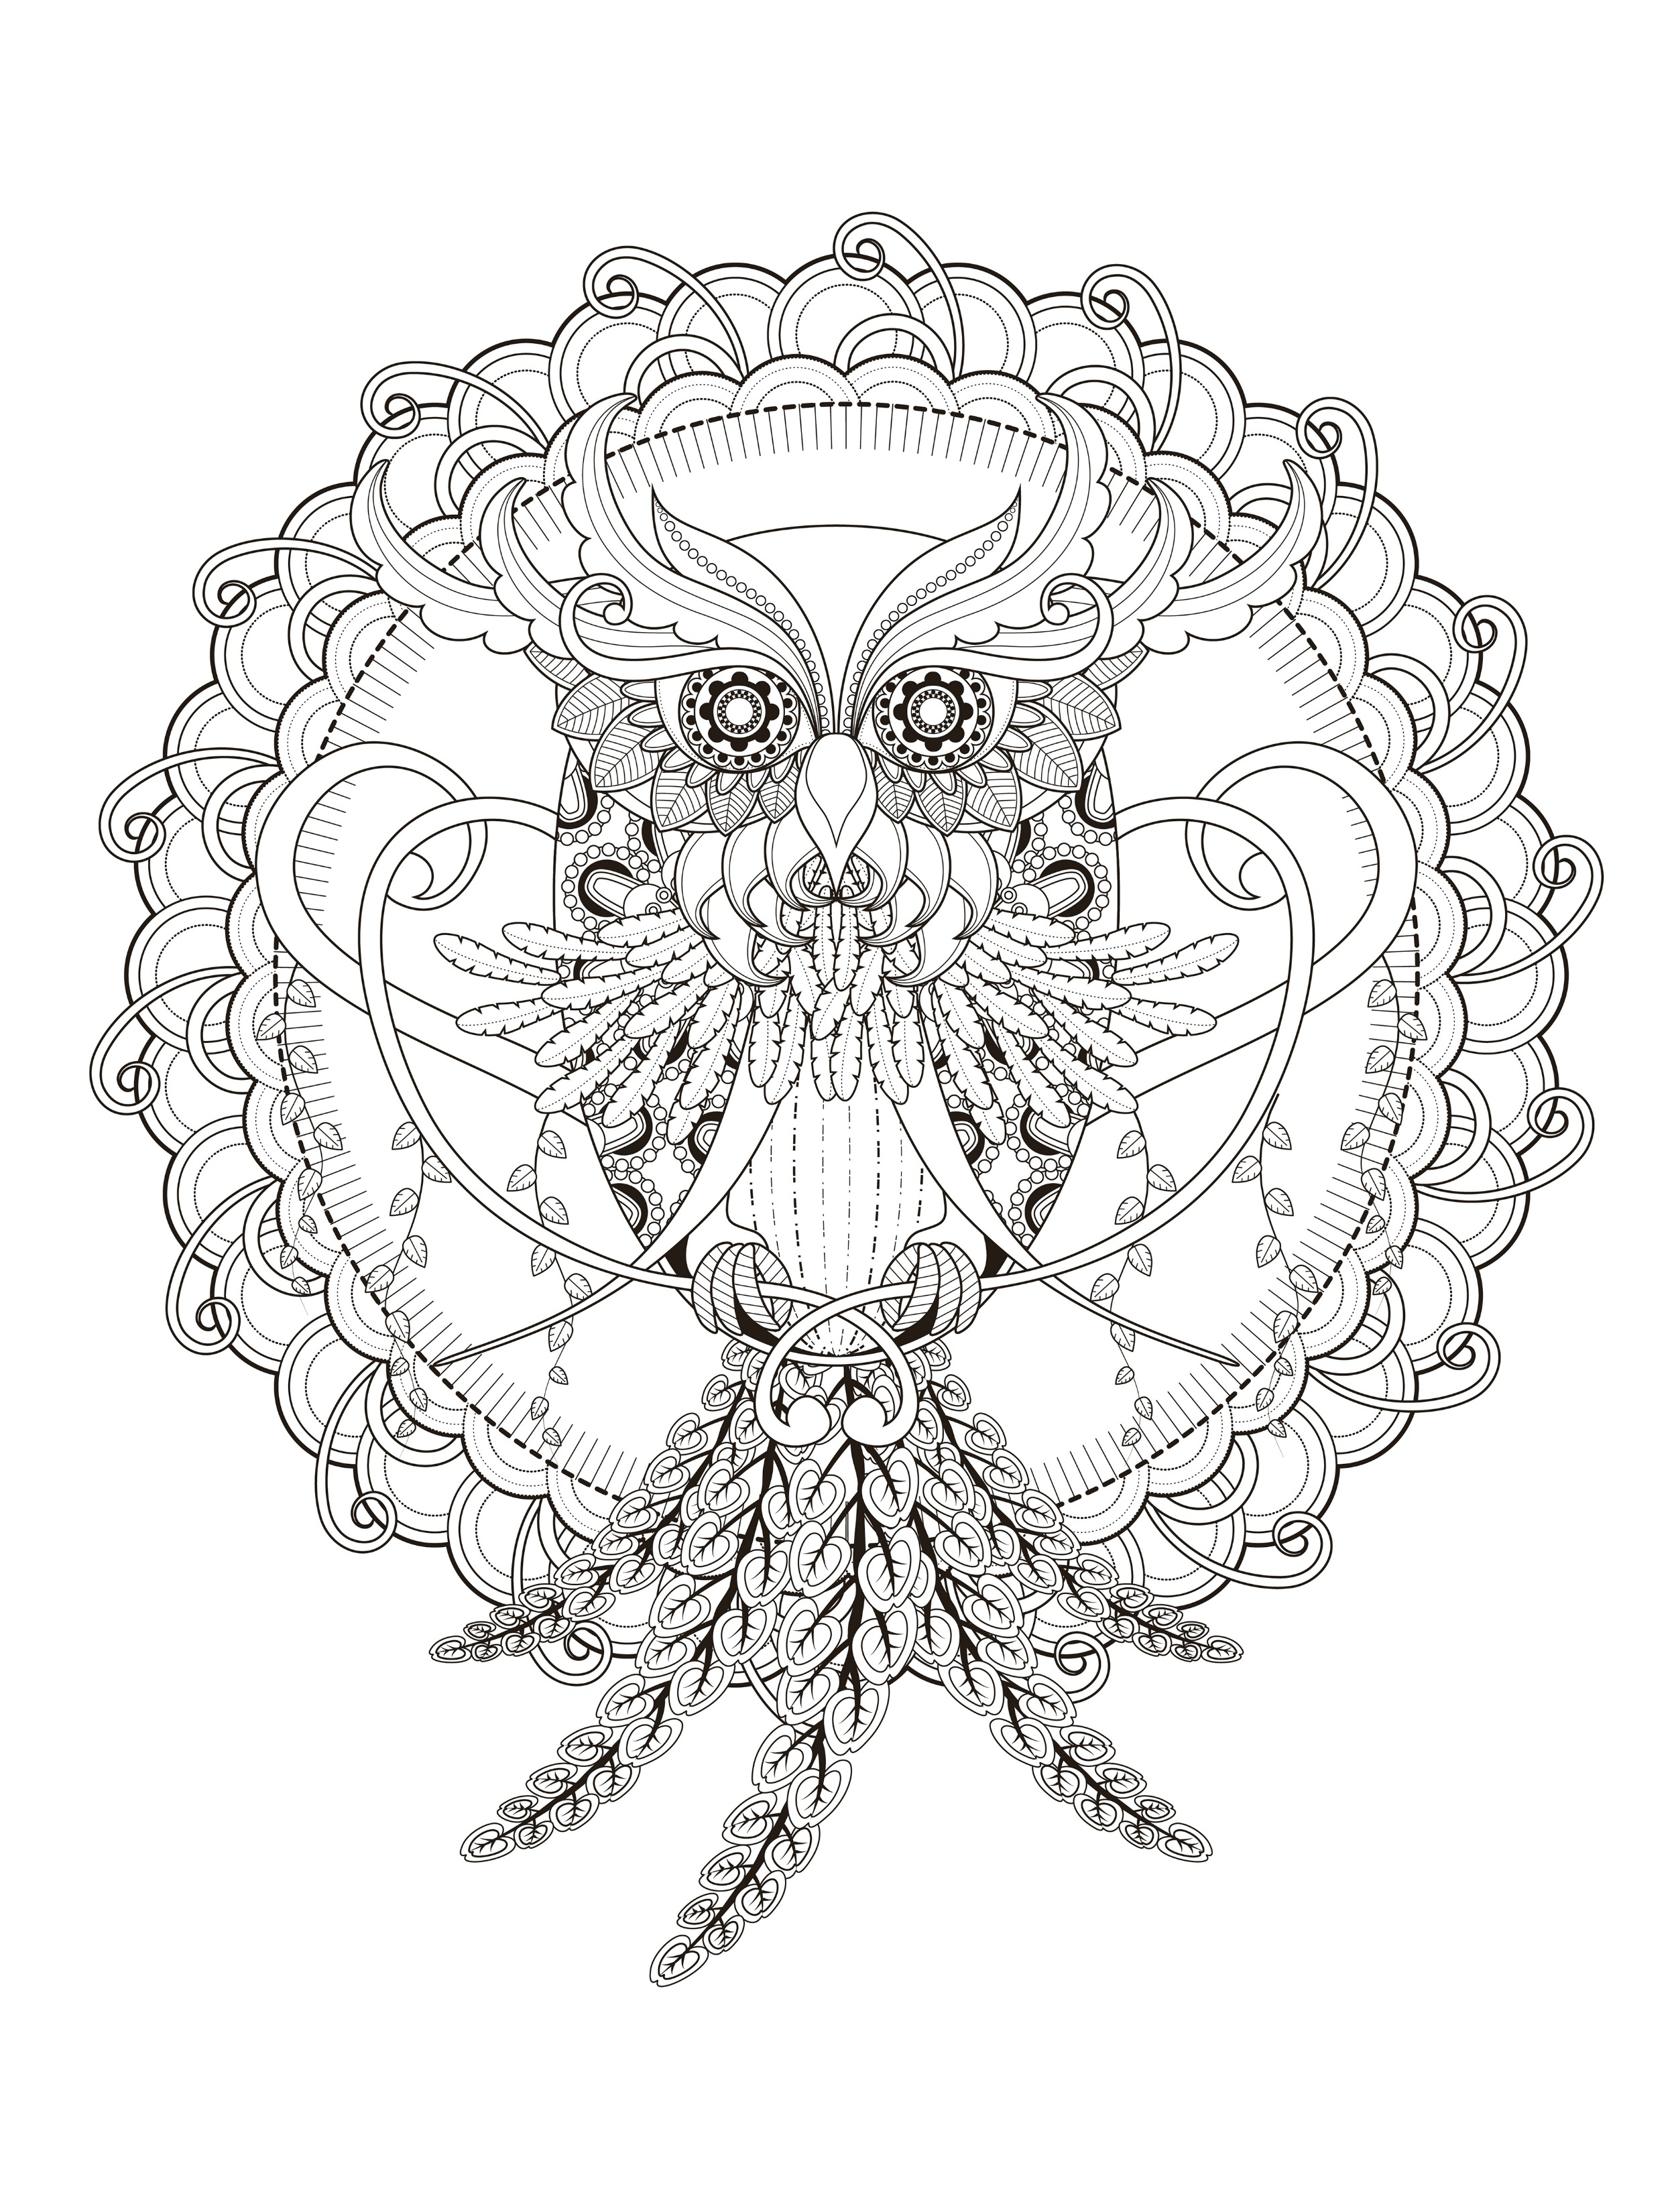 printable owl coloring pages for adults 7 - Free Owl Coloring Pages 2